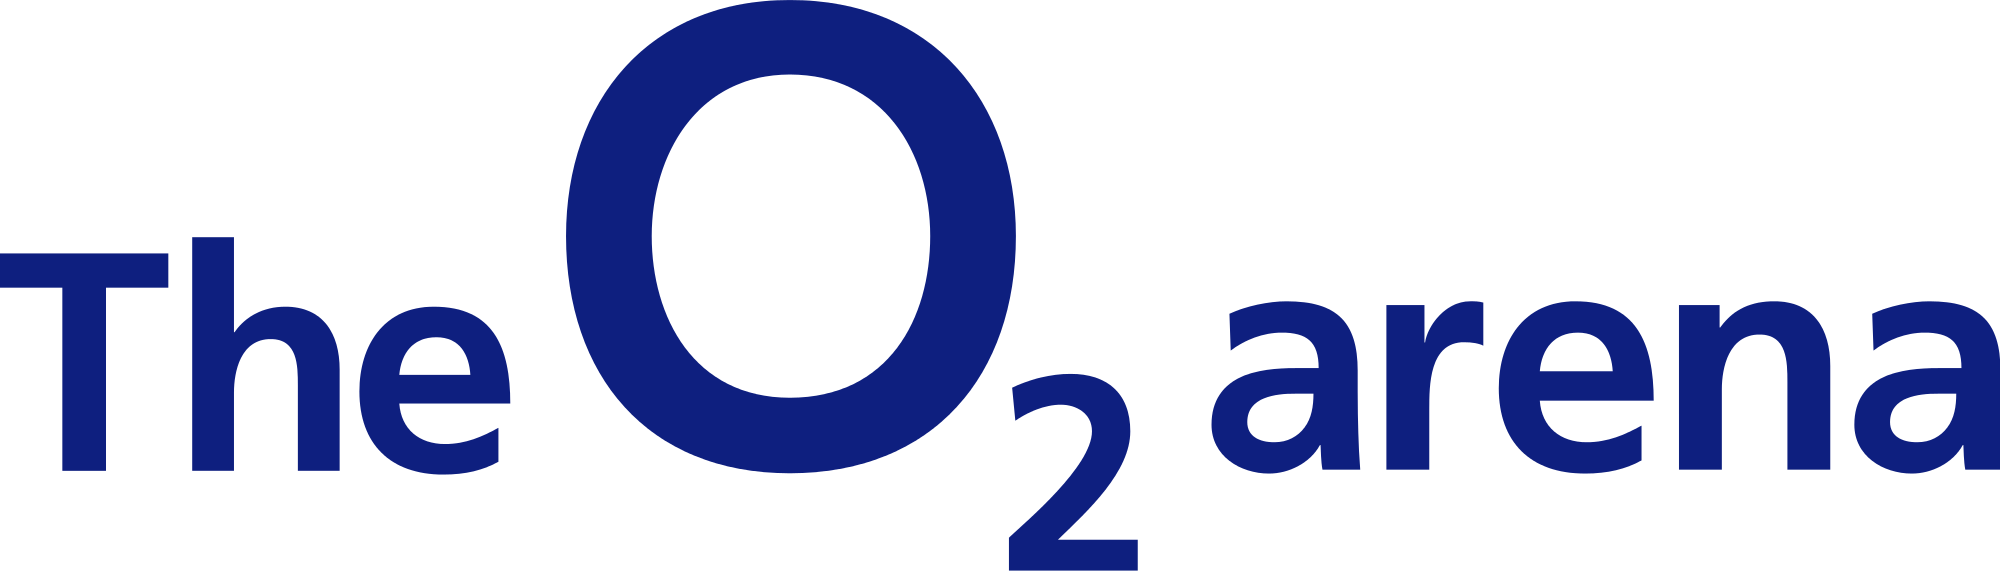 File:The O2 Arena (London) logo.svg.